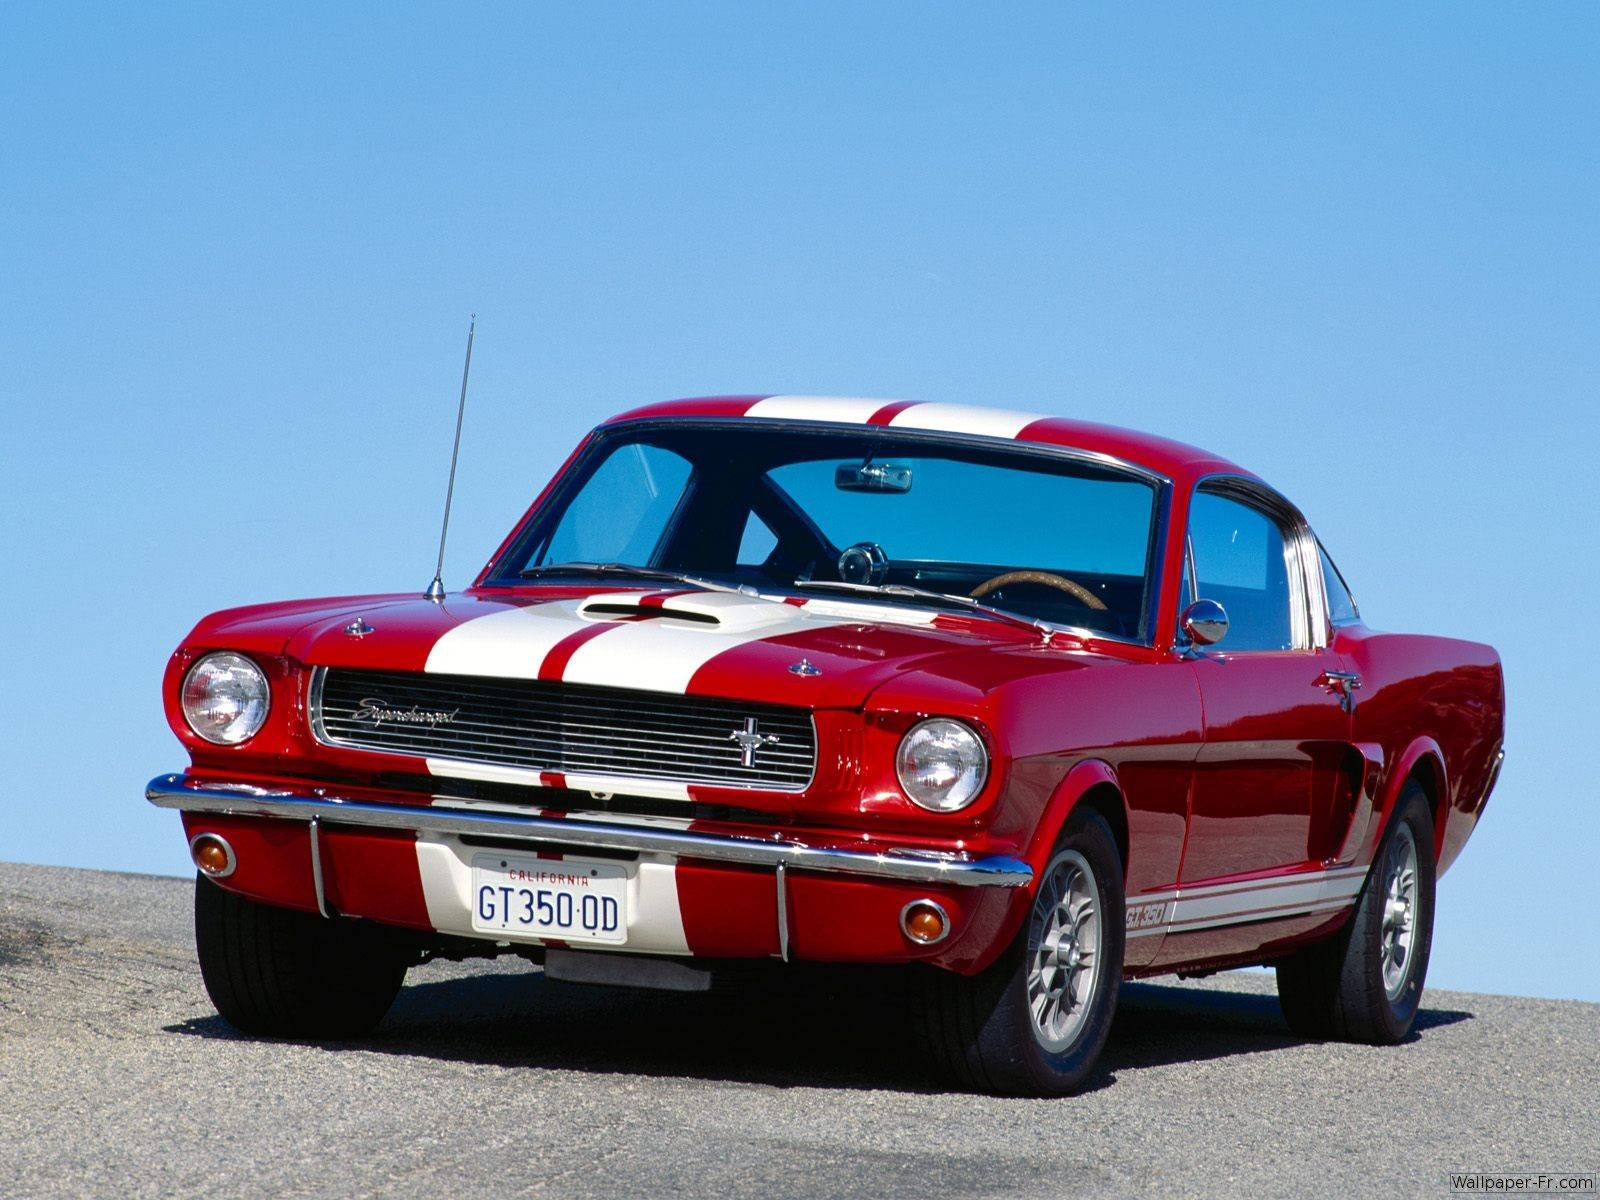 1965 Ford Mustang Shelby Gt350 With Images Ford Mustang Shelby